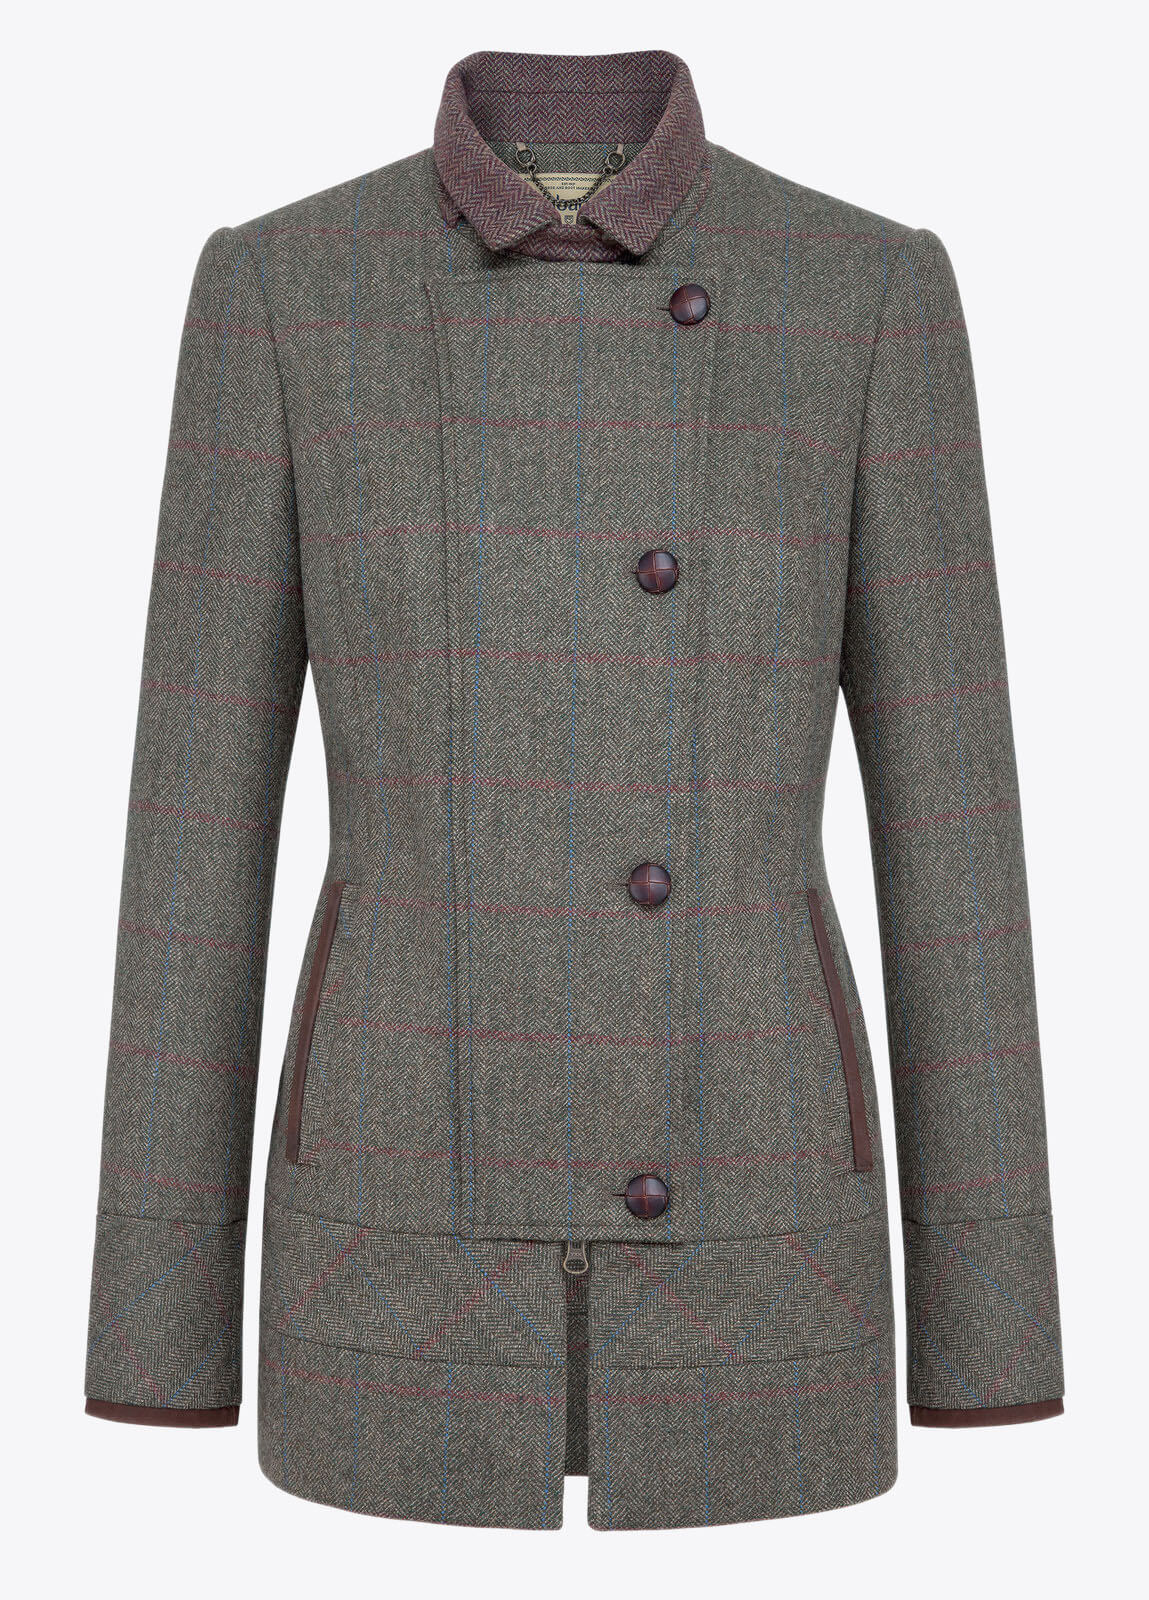 Willow Tweed Jacket - Moss